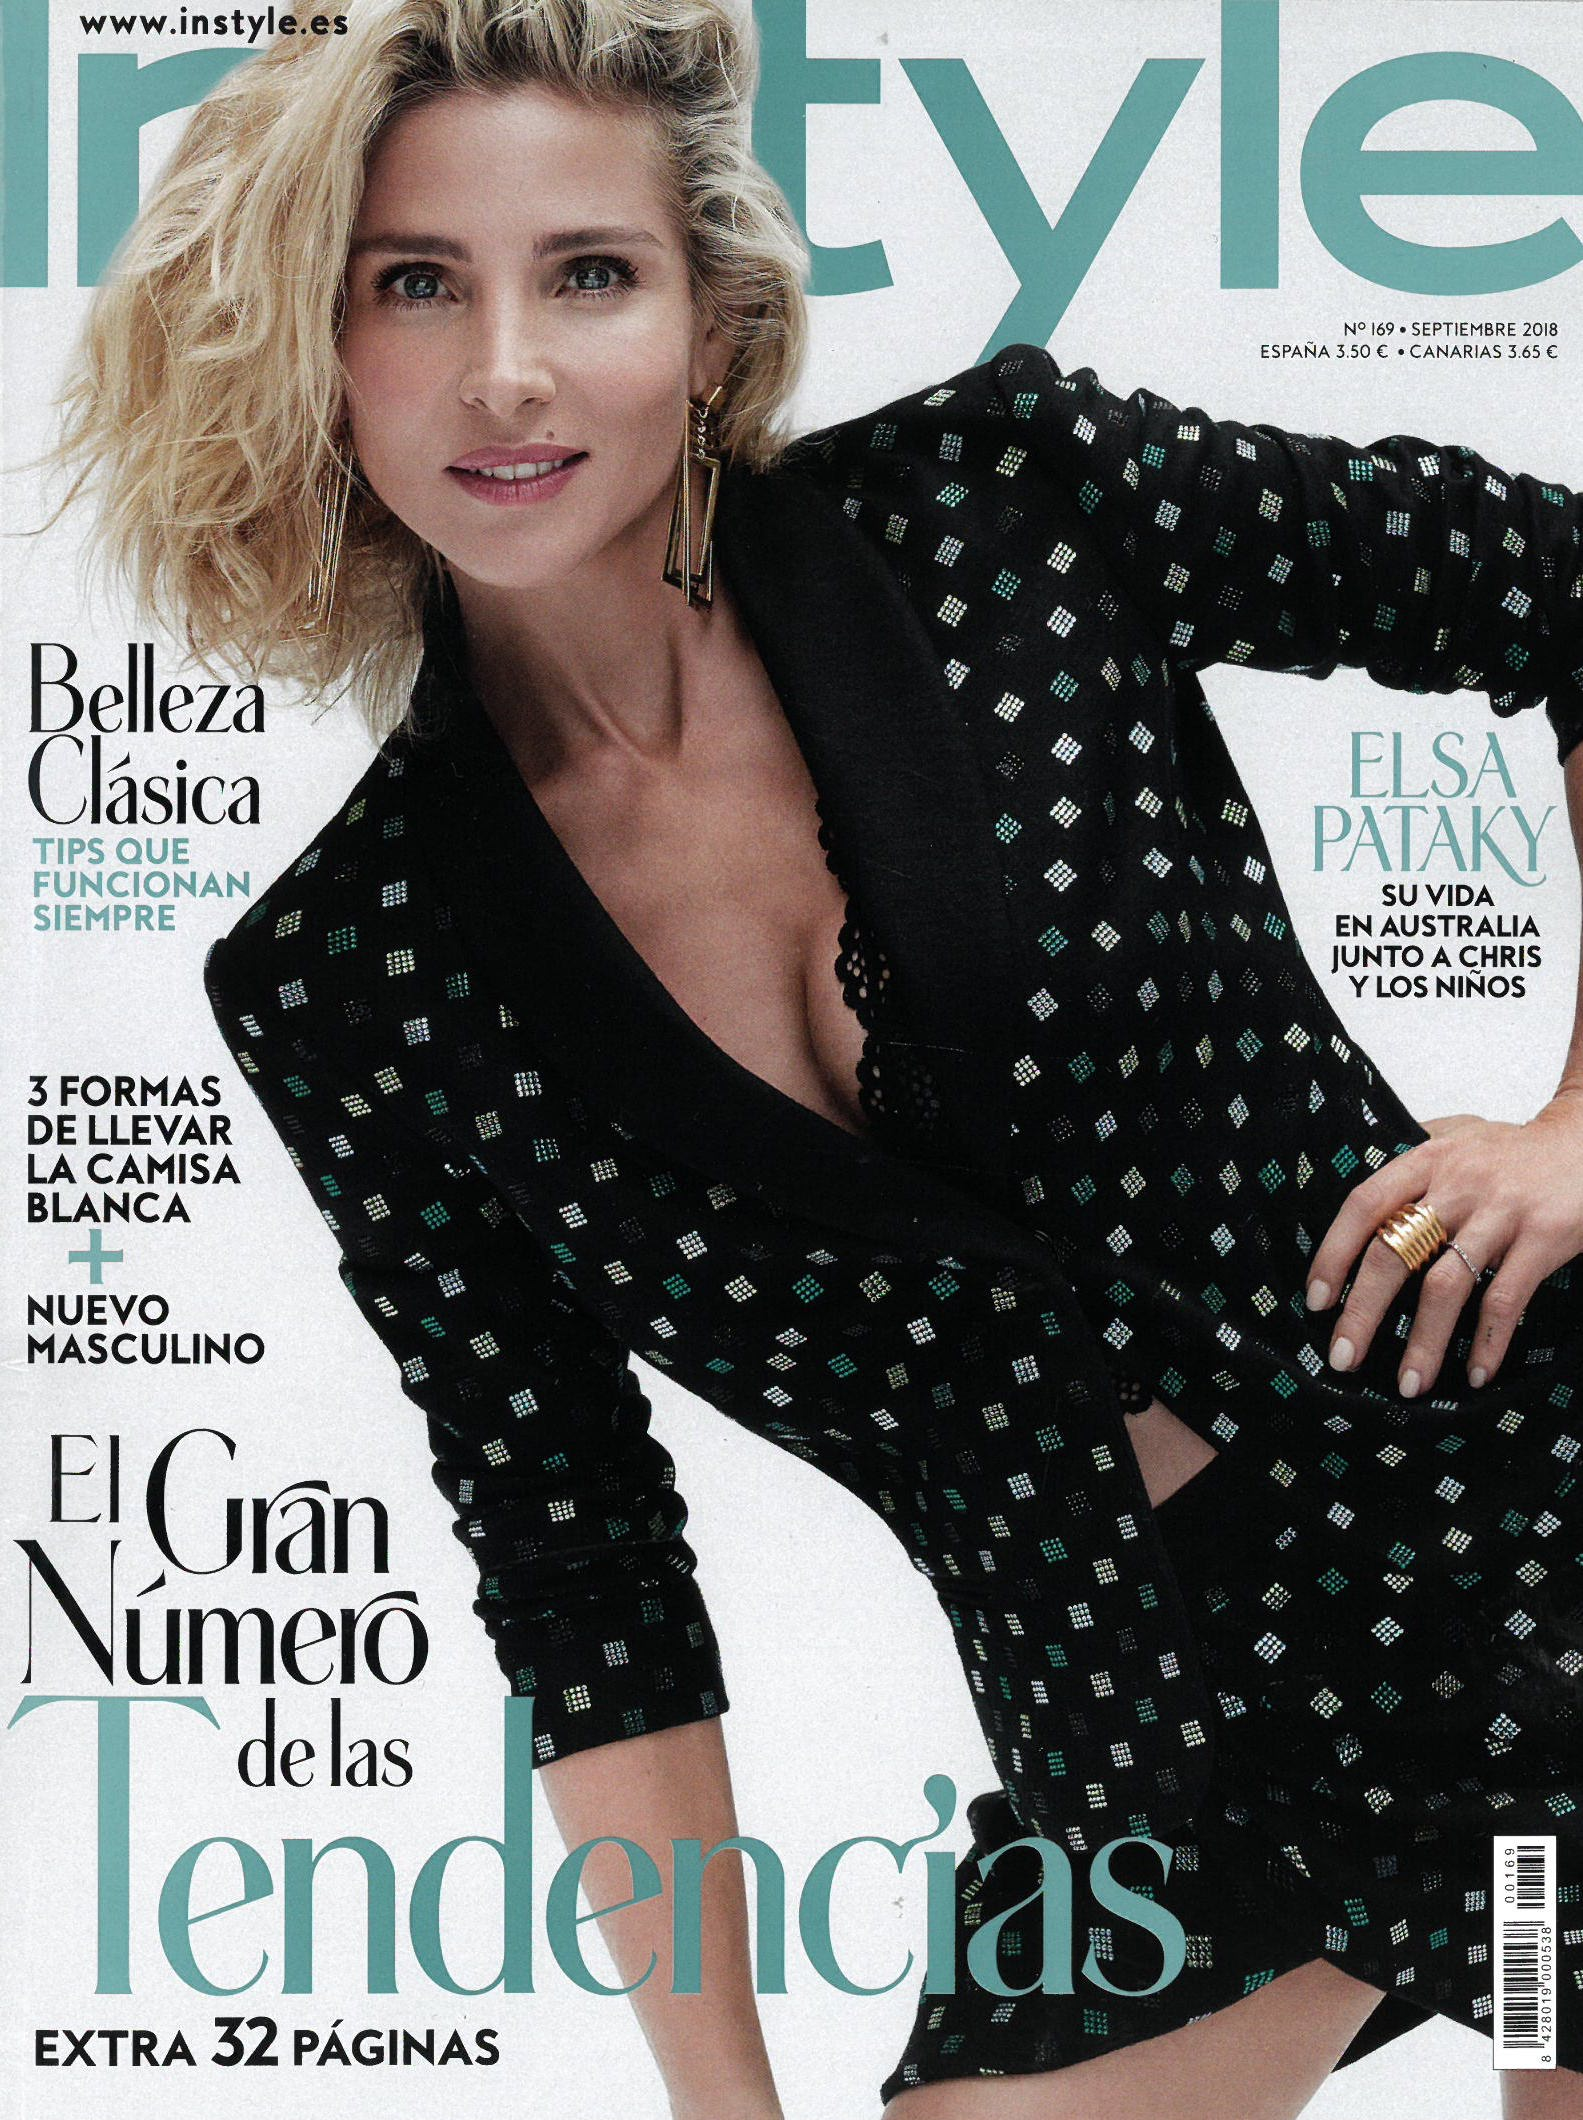 INSTYLE_COVER_BETOLAZA